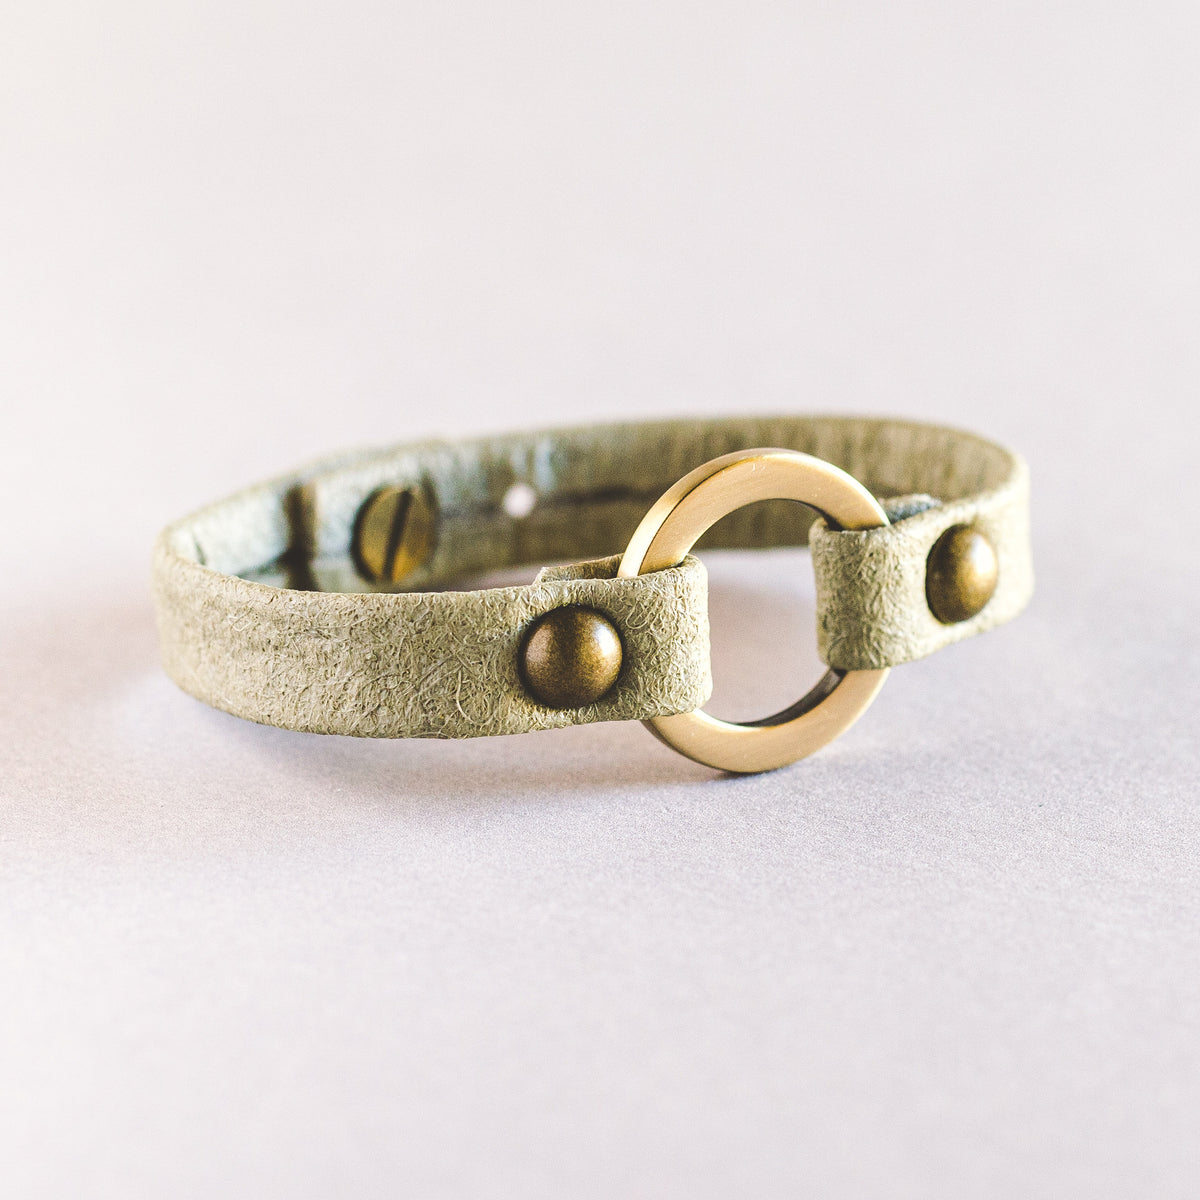 Vegan One Love - Antique Brass